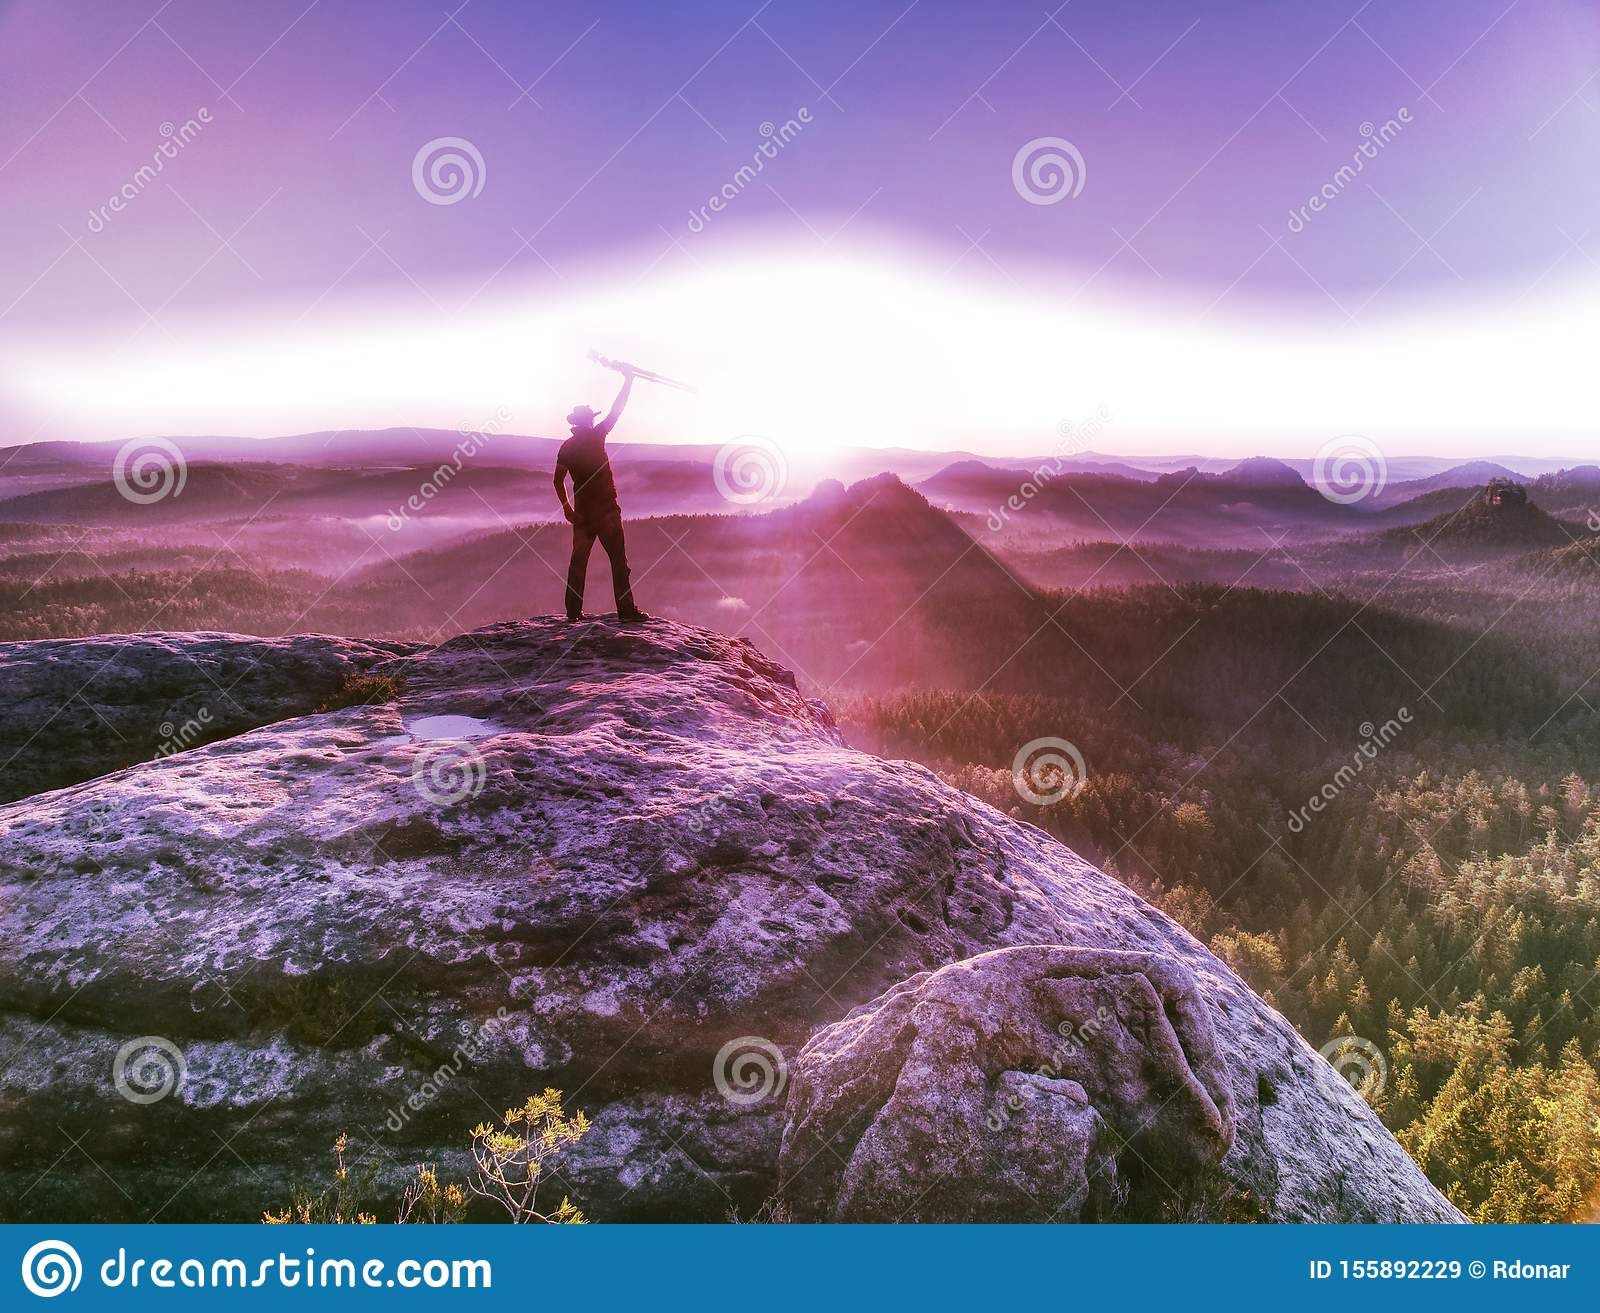 Sunrise on a rocky summit. Artist works in nature